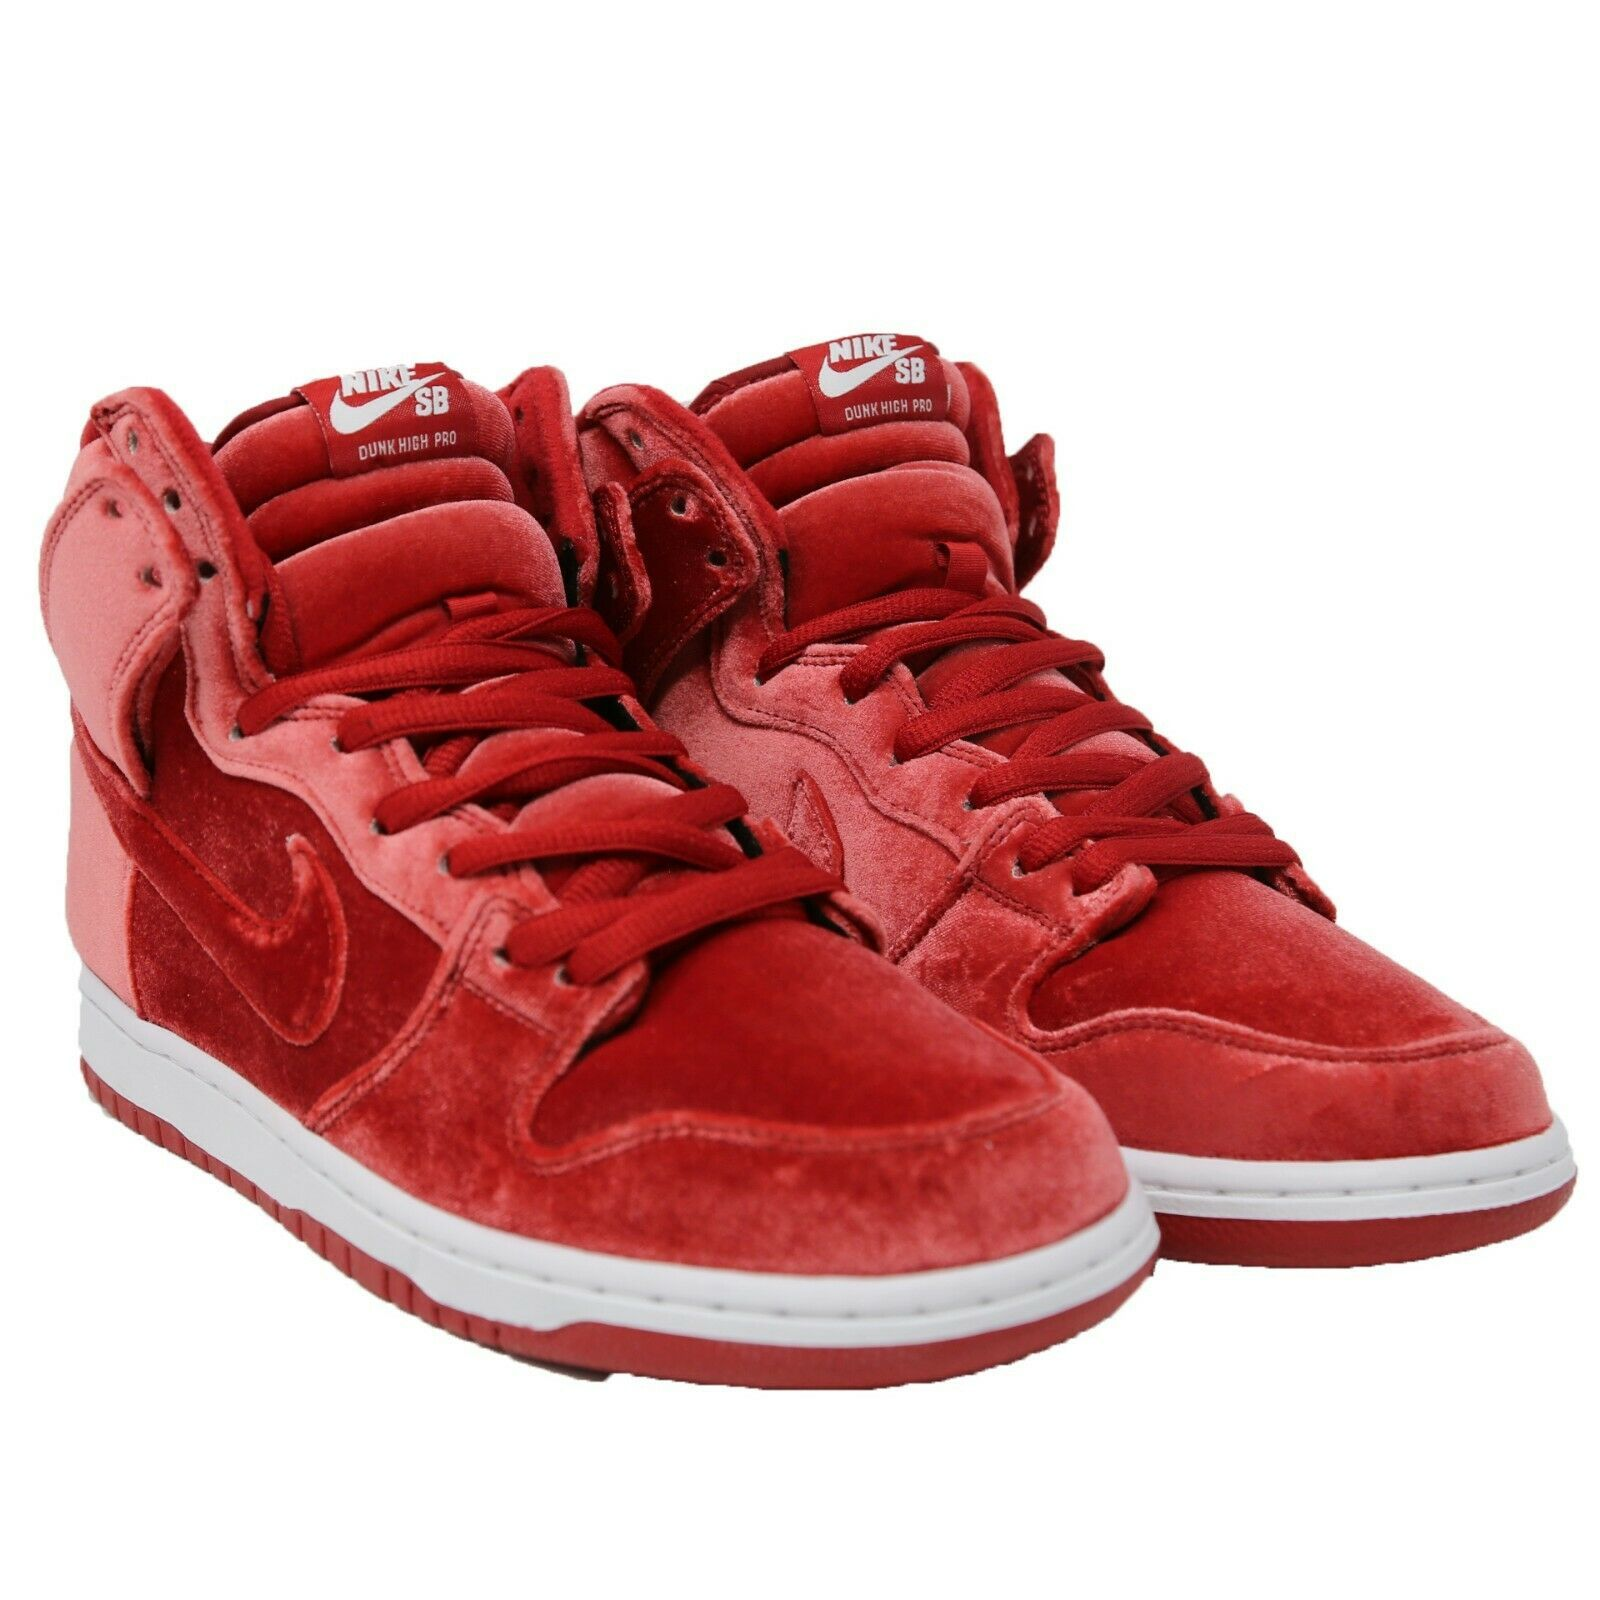 buy popular 8ee46 d511e Nike Sb Dunk Hoch pro 'Roter samt ' Crush and 50 similar items